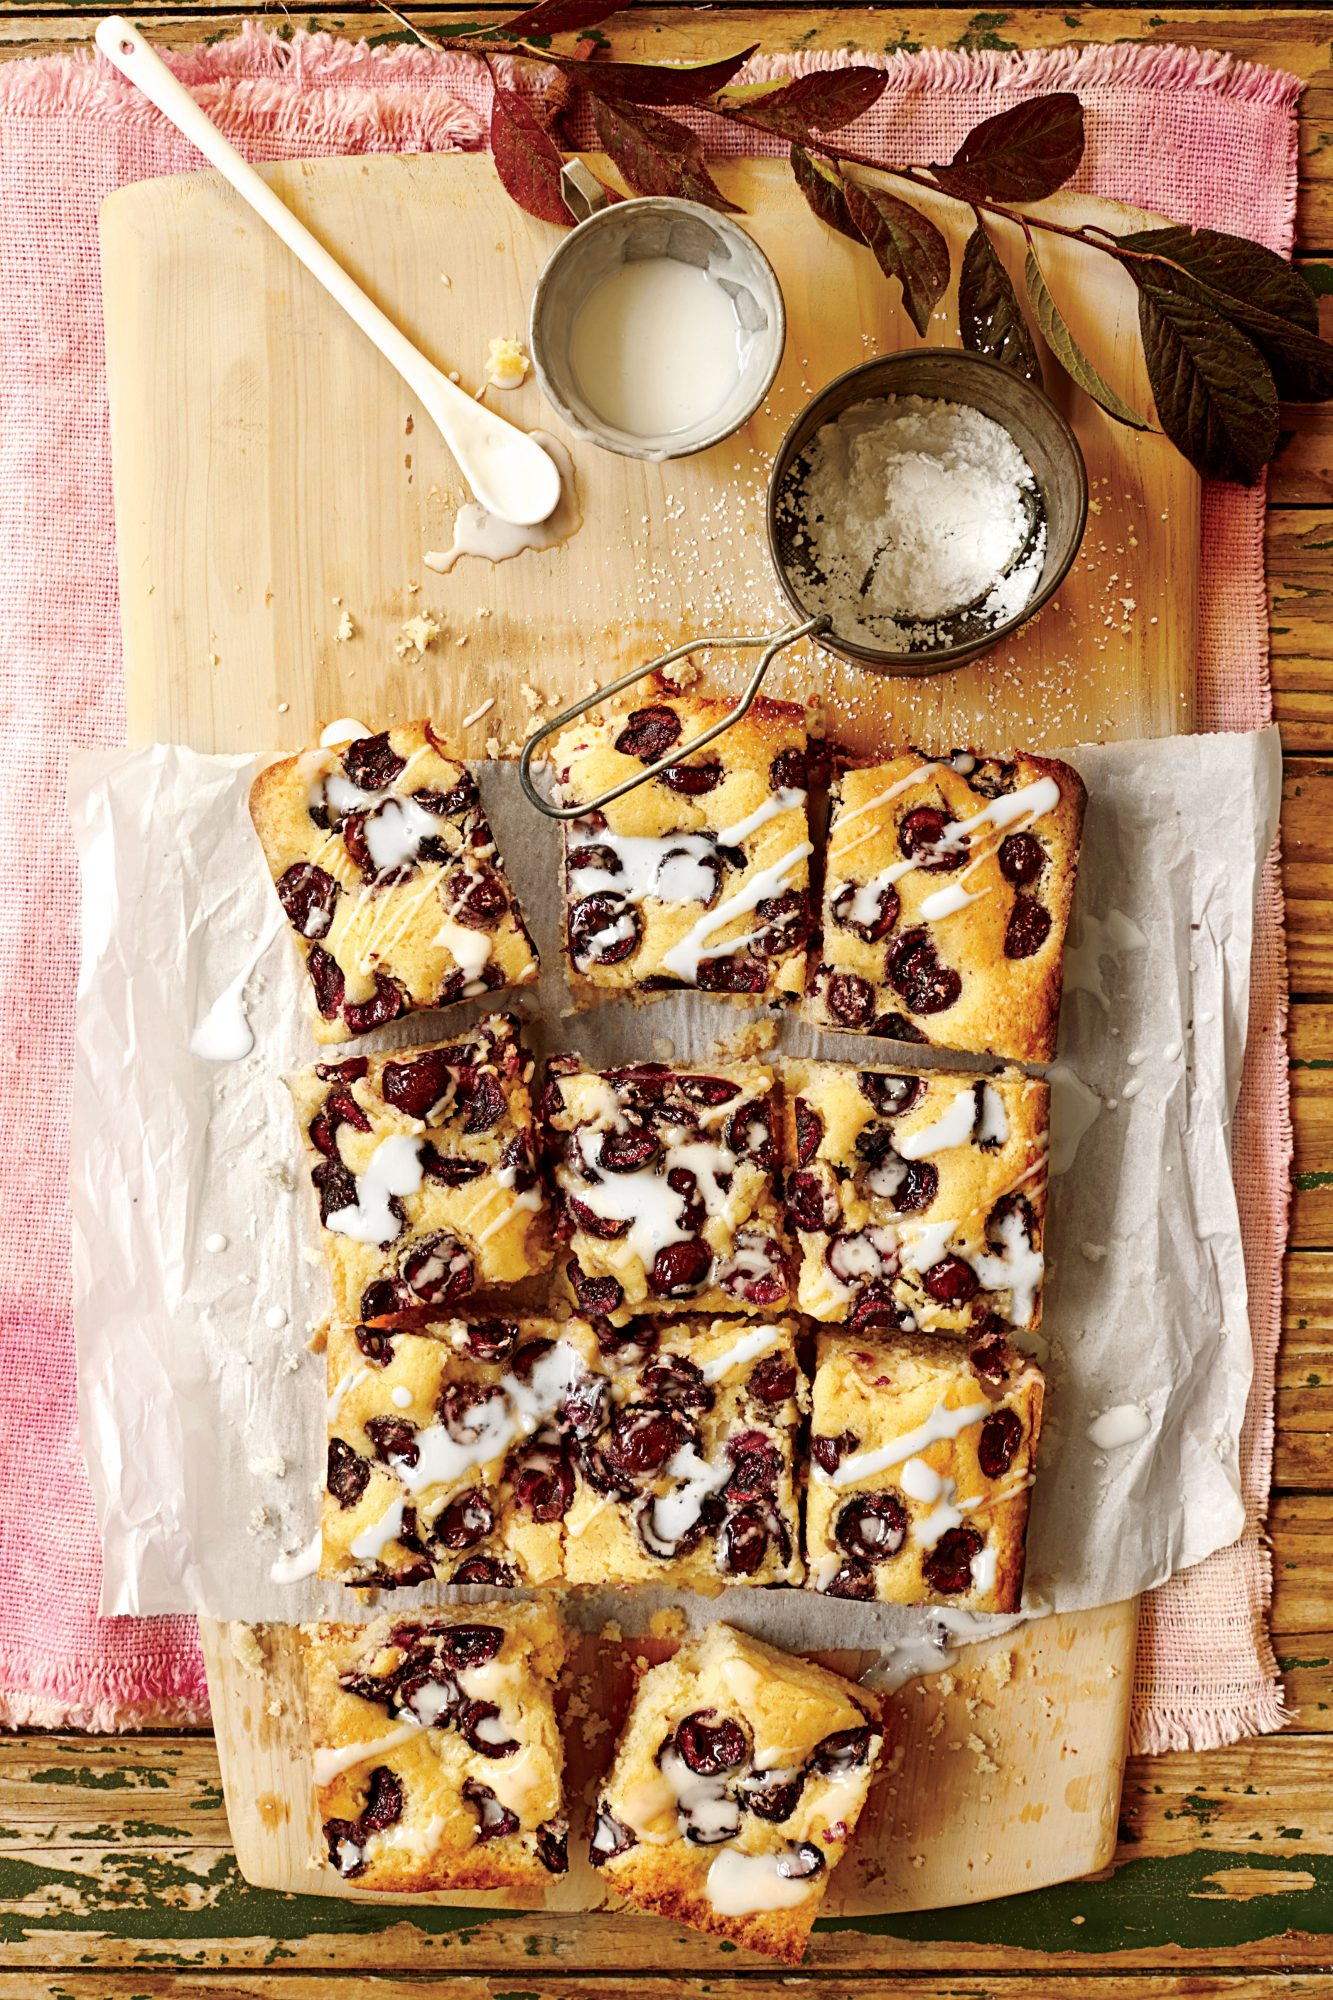 Buttermilk-Glazed Cherry Sheet Cake